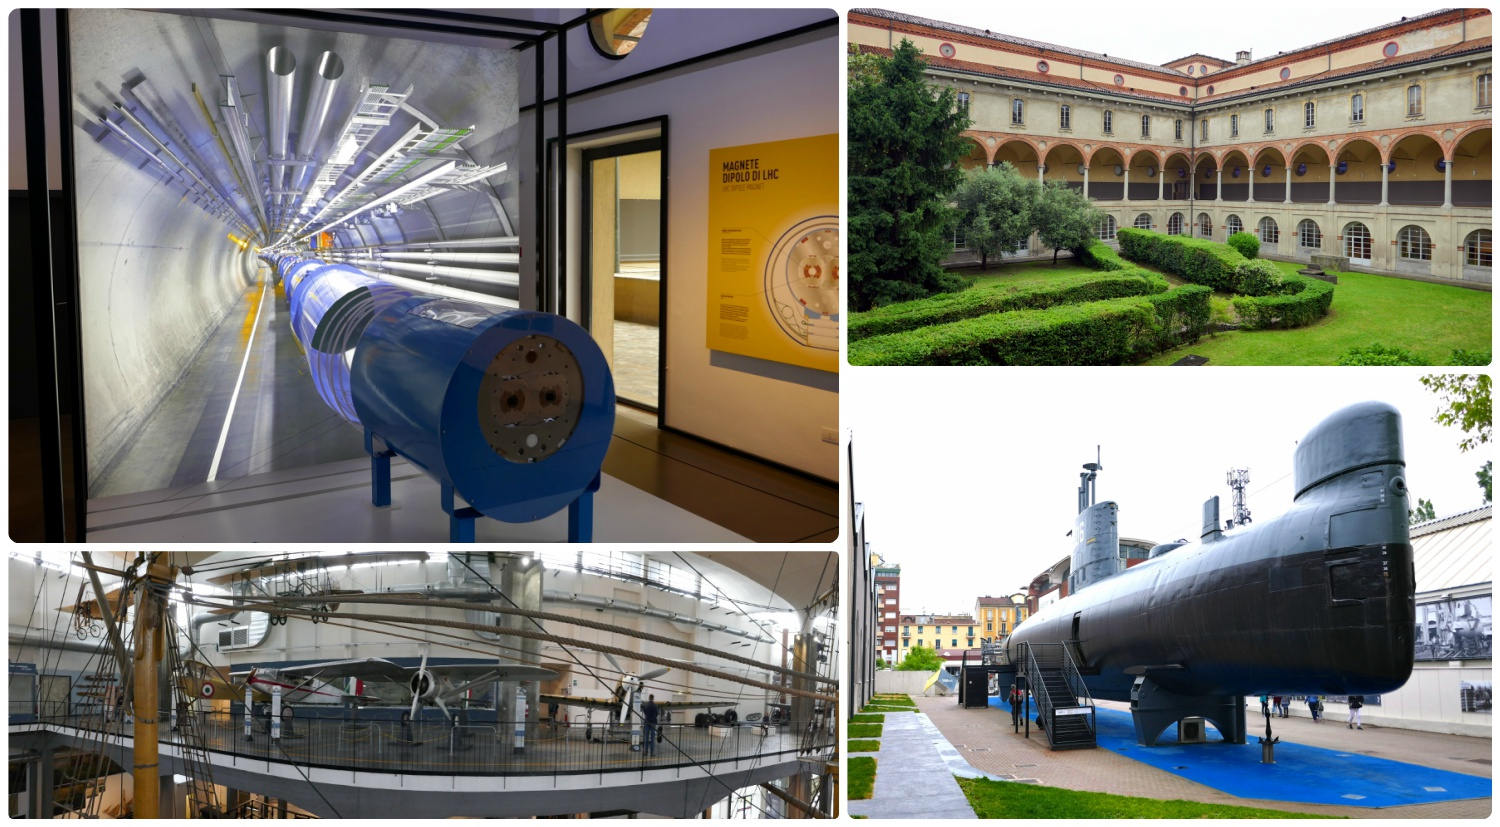 All images at Leonardo da Vinci National Museum of Science and Technology. Clockwise (from the top):  CERN particle accelerator exhibit, the center courtyard at the museum, a submarine in the transportation department of the museum, a panorama of airplanes on the second level of the transportation wing.